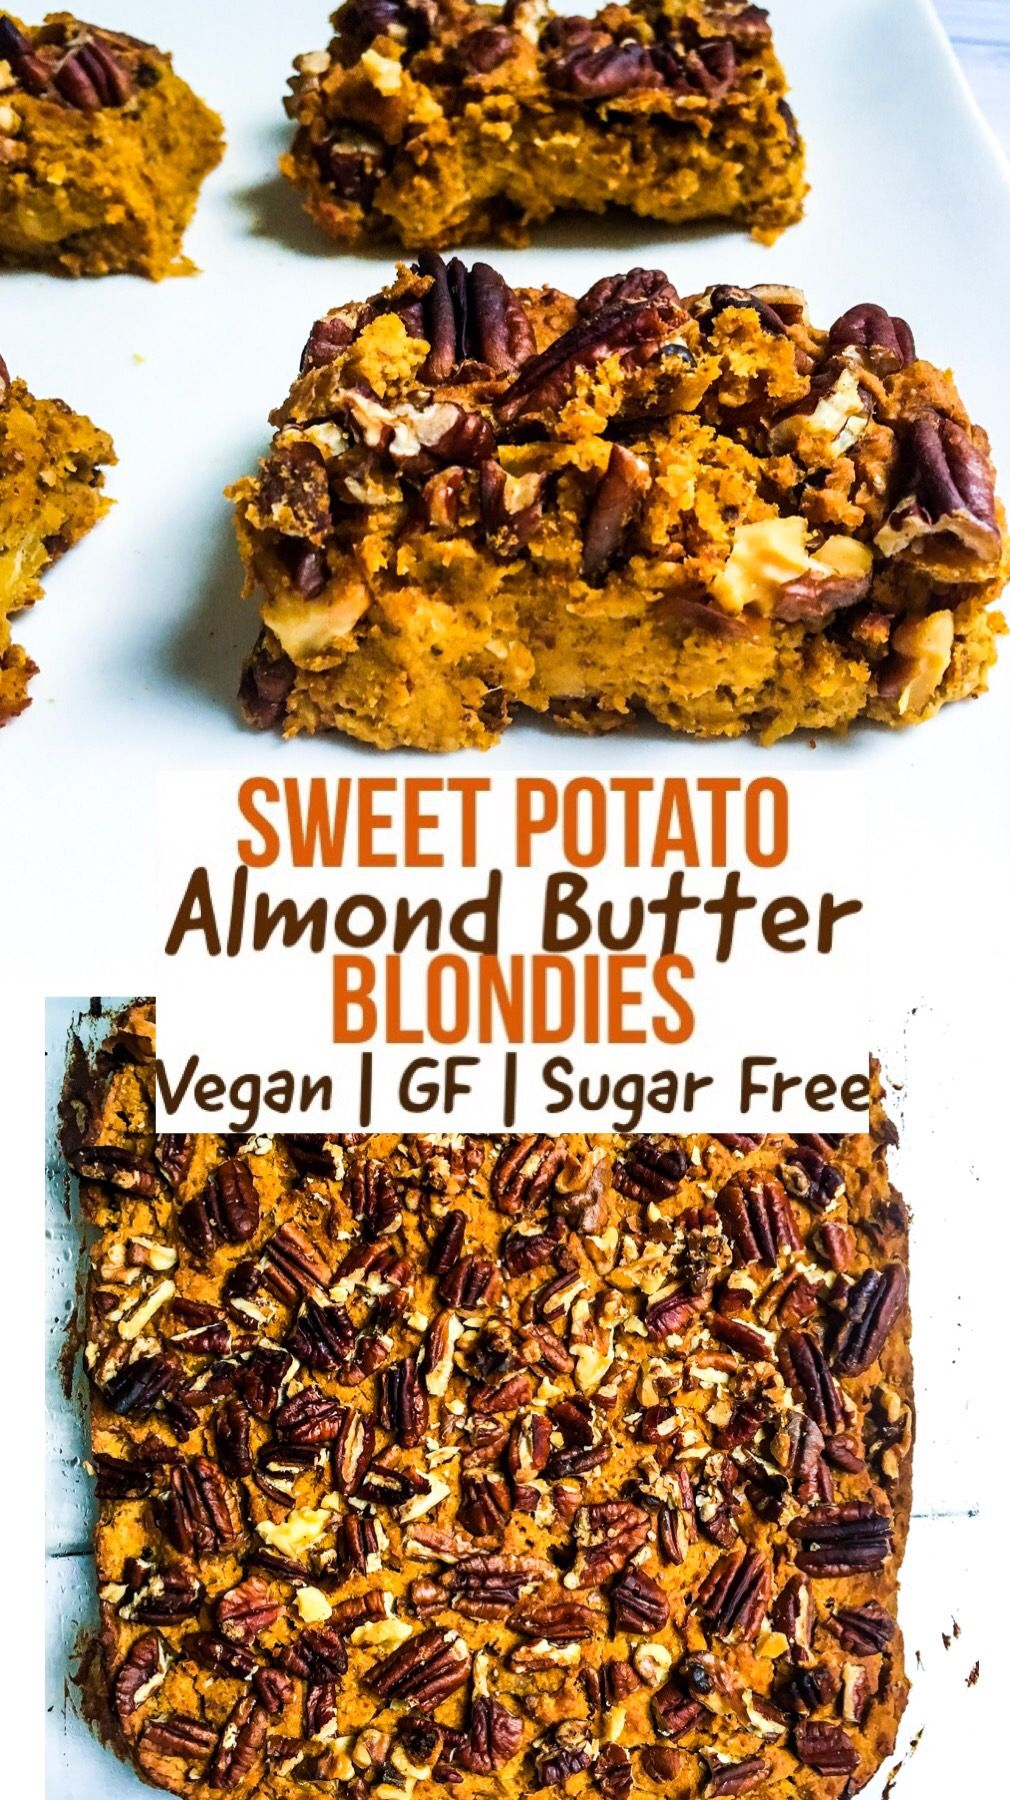 Sweet Potato Almond Butter Blondies This sweet potato almond butter blondie recipe is rich, sweet, and delicious! Plus, it's vegan, sugar free, gluten free, and filled with protein, so dig in!